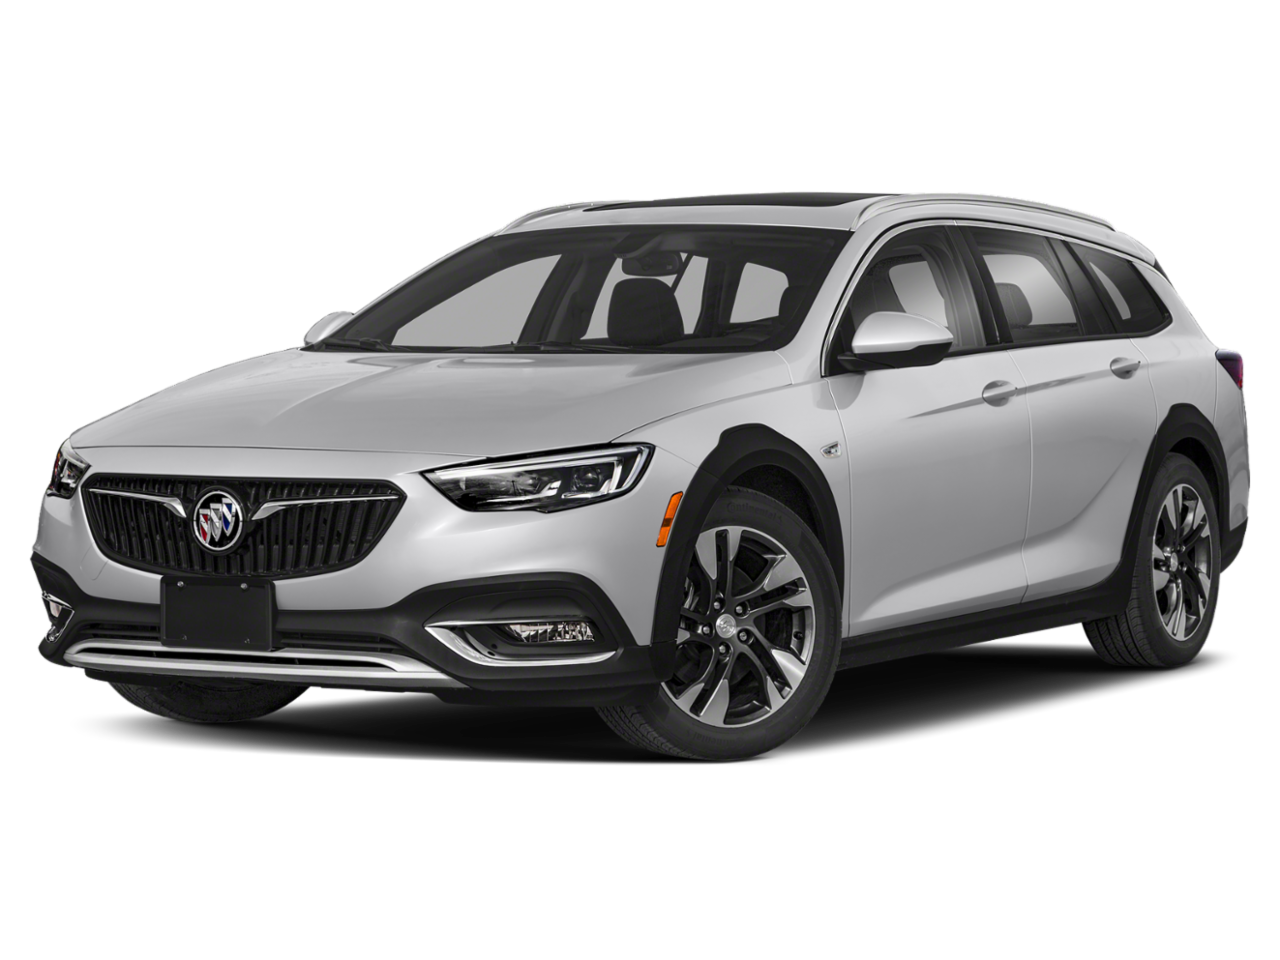 Buick 2019 Regal TourX Standard